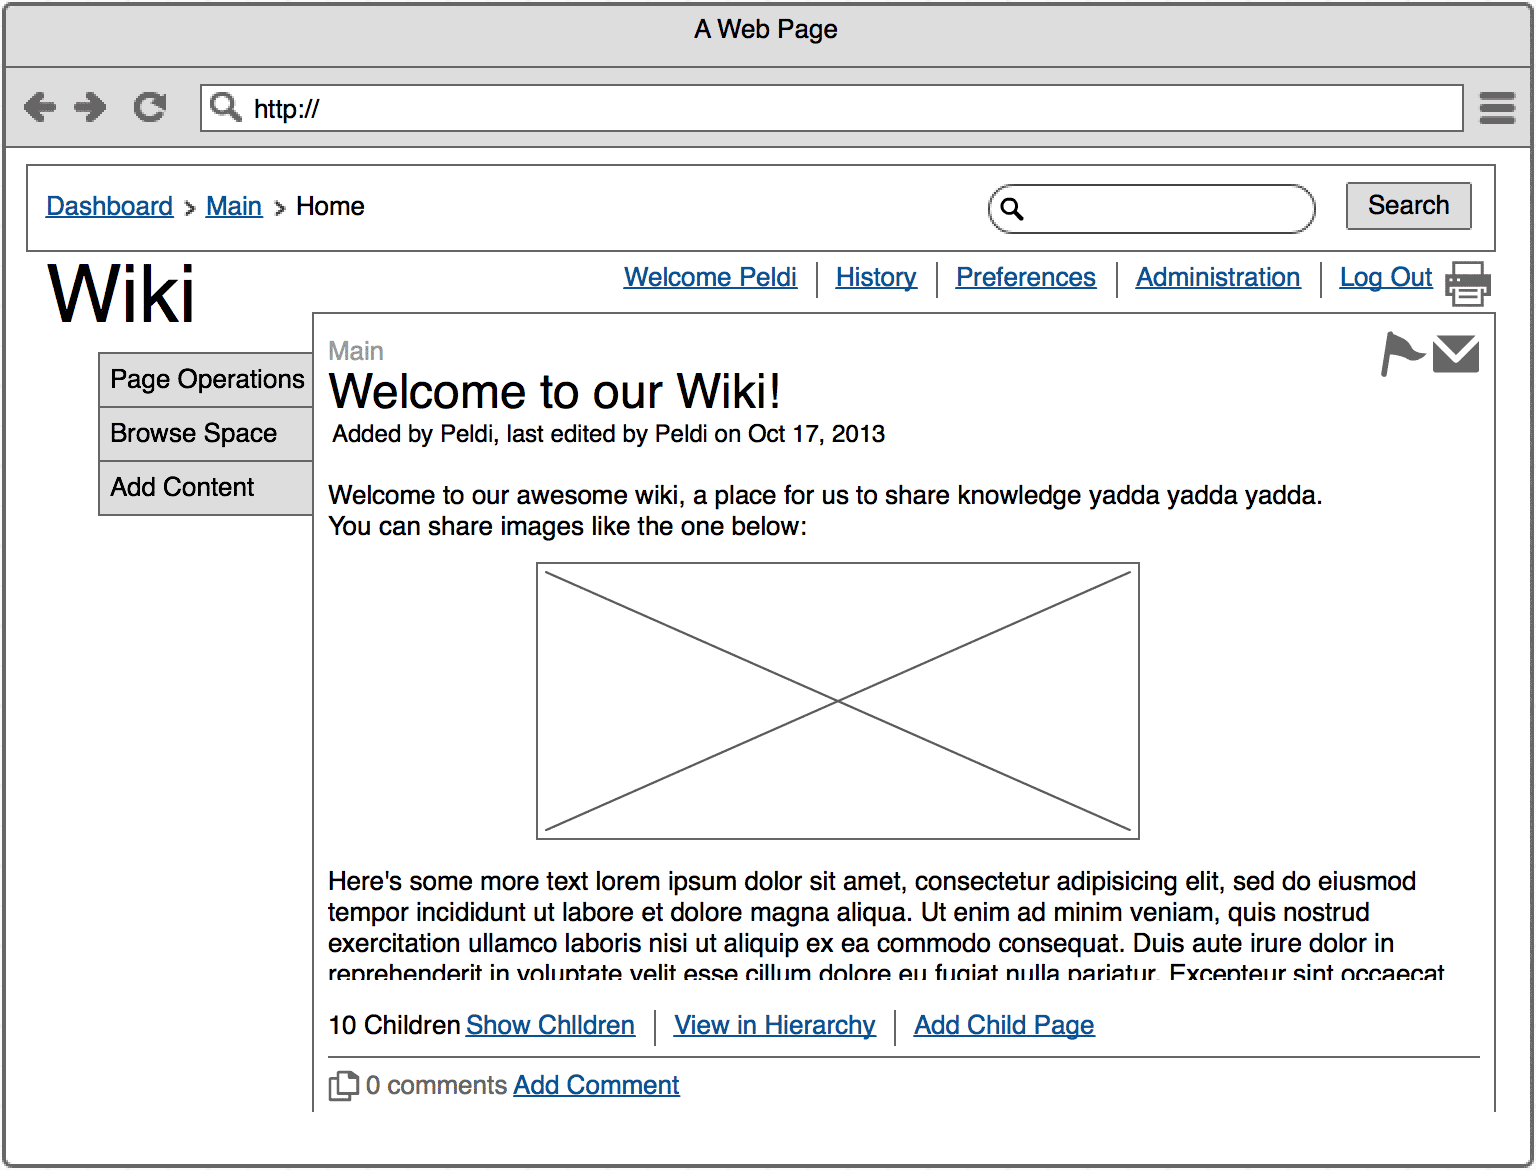 Sourced from <a href='https://support.mybalsamiq.com/projects/examples/grid'>Balsamiq</a>.